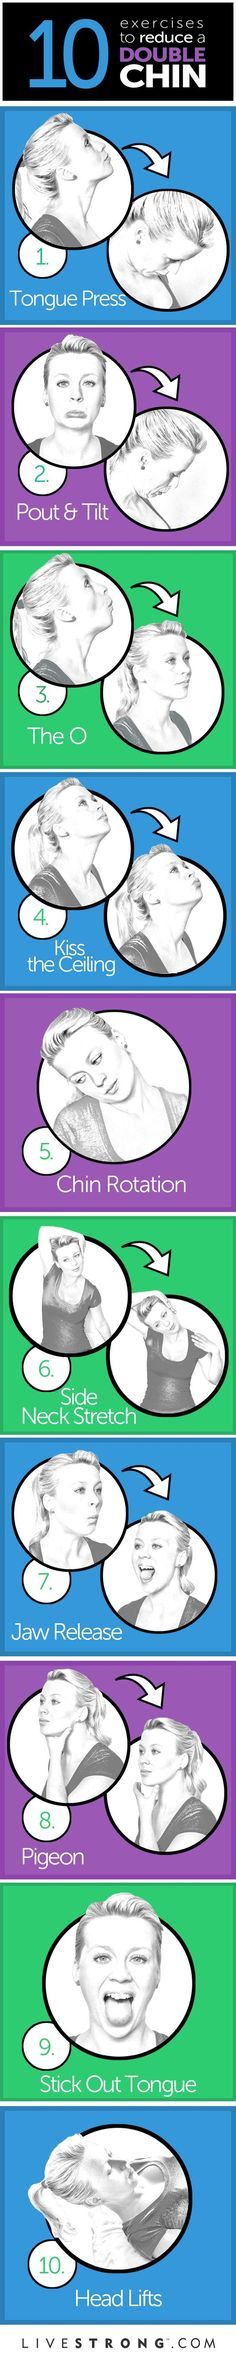 10 great exercises to tone your neck and chin.: